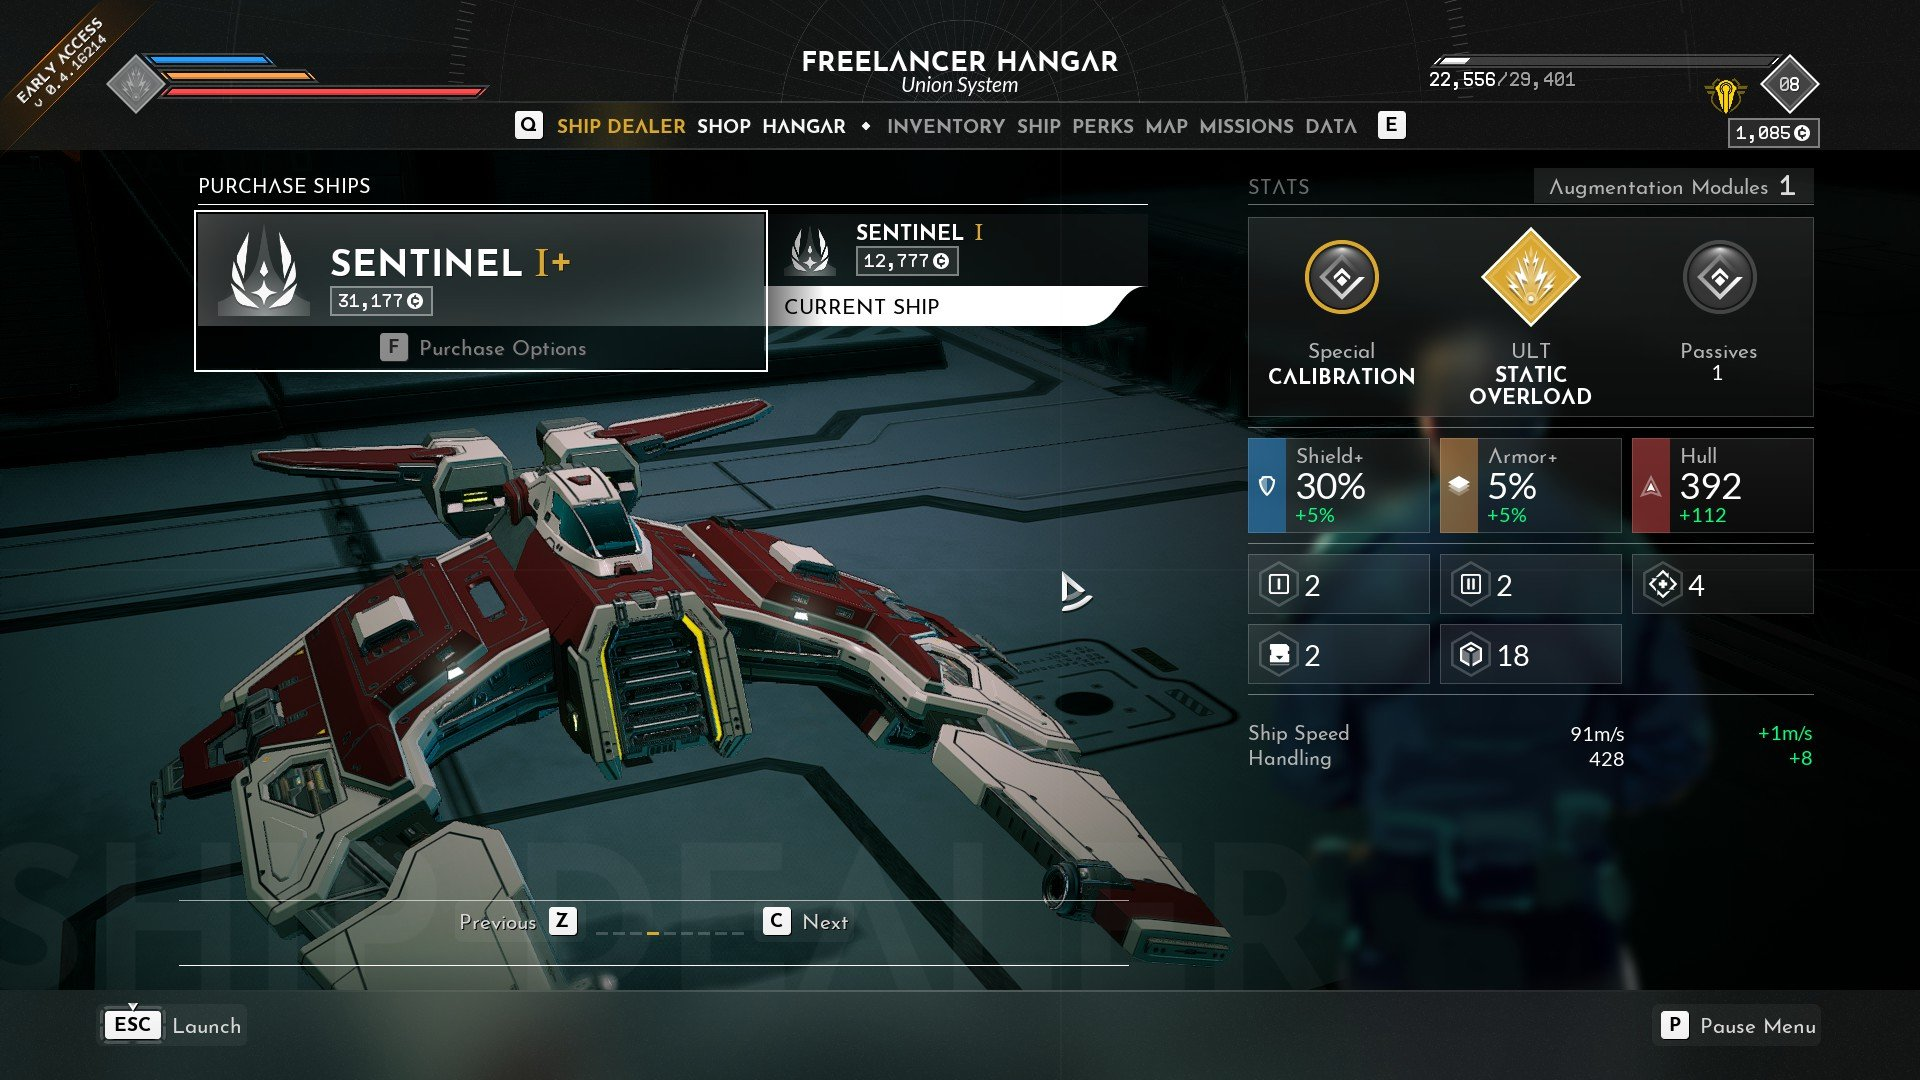 Everspace 2 Sentinel I+ Freelancer